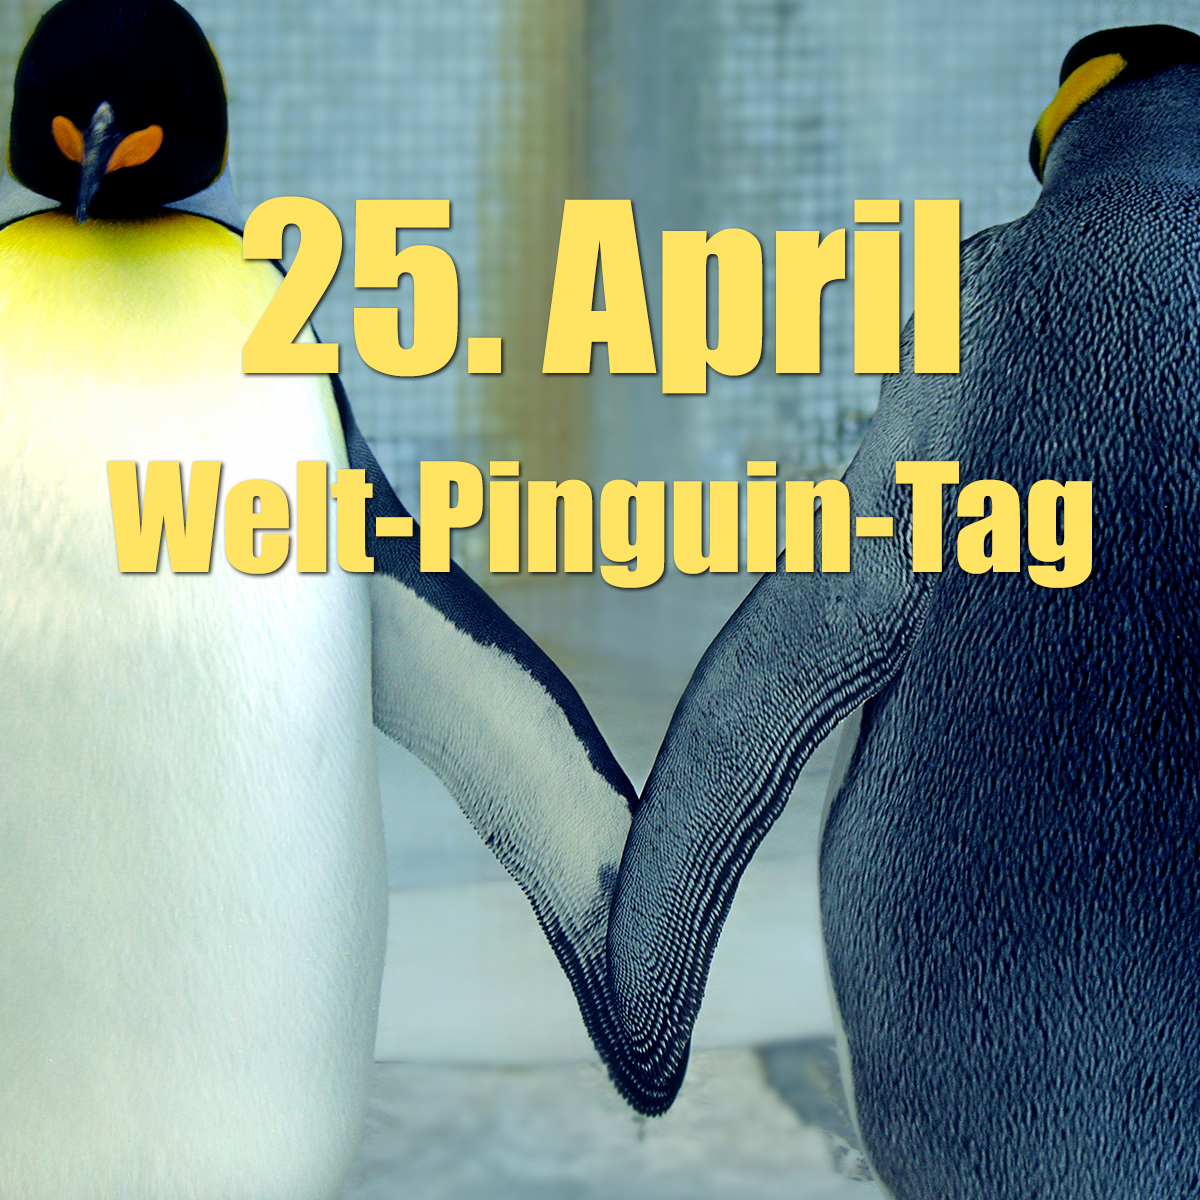 Welt-Pinguin-Tag